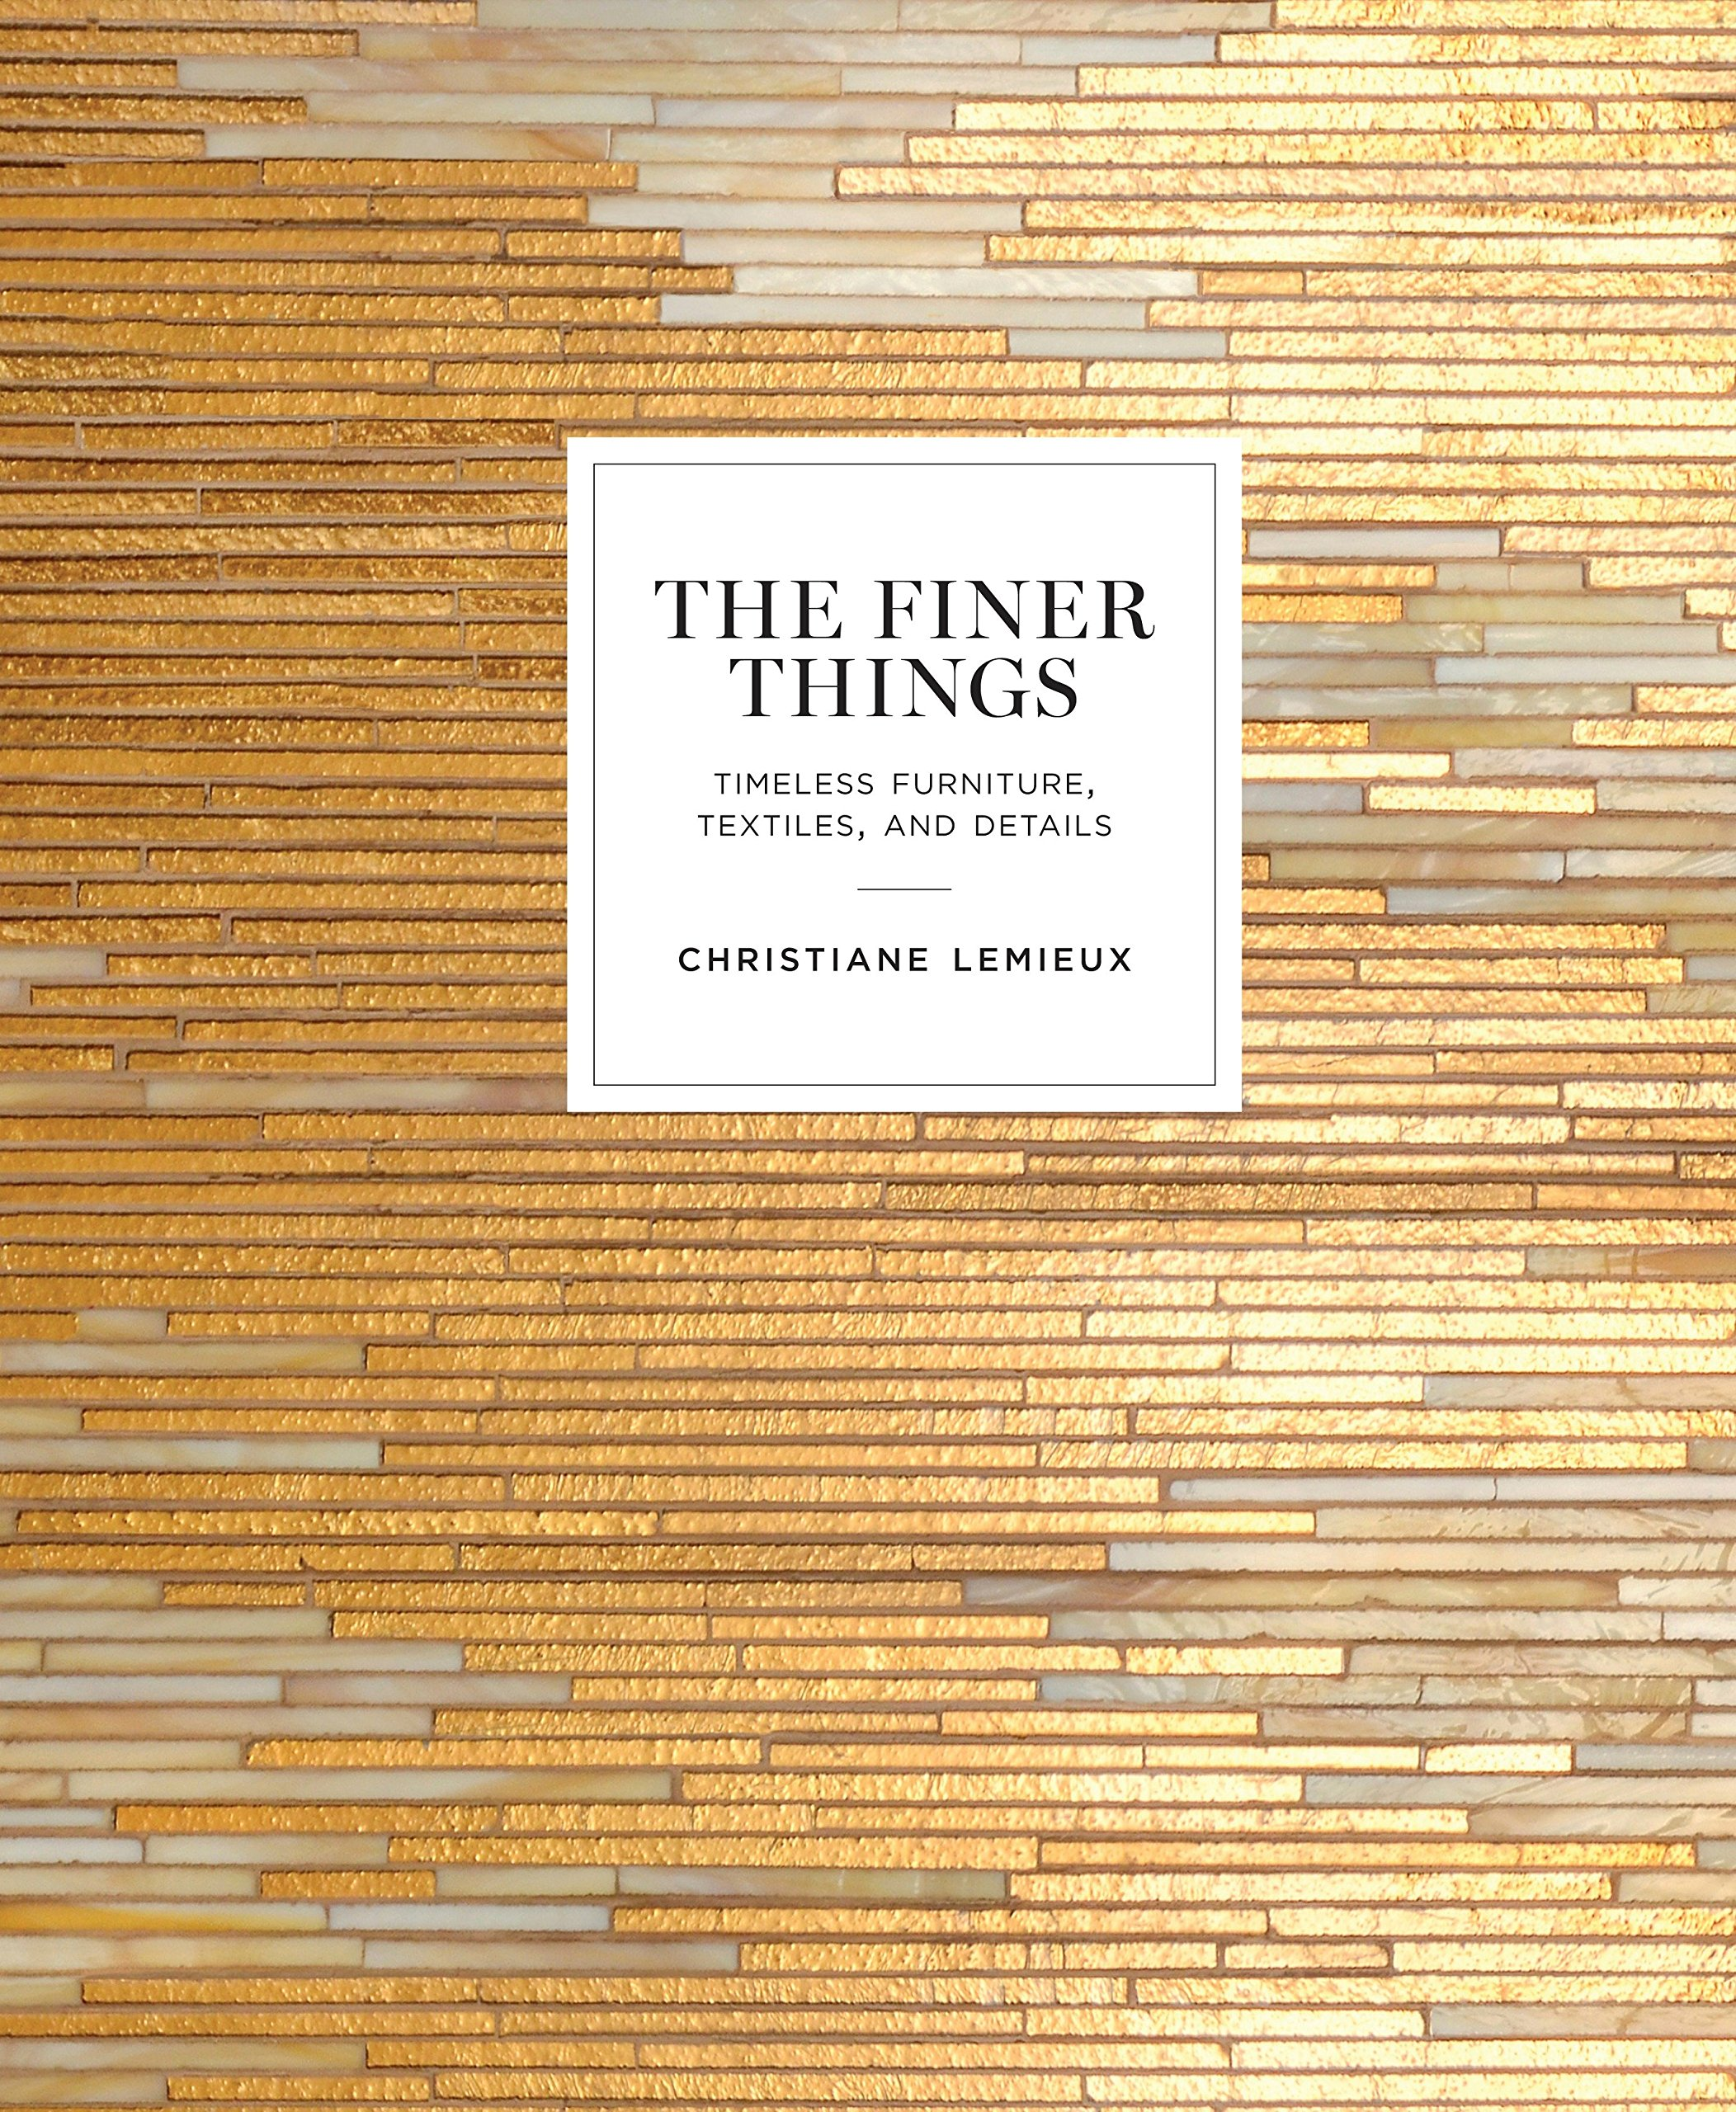 The Finer Things: Timeless Furniture, Textiles, and Details by LeMieux Christiane